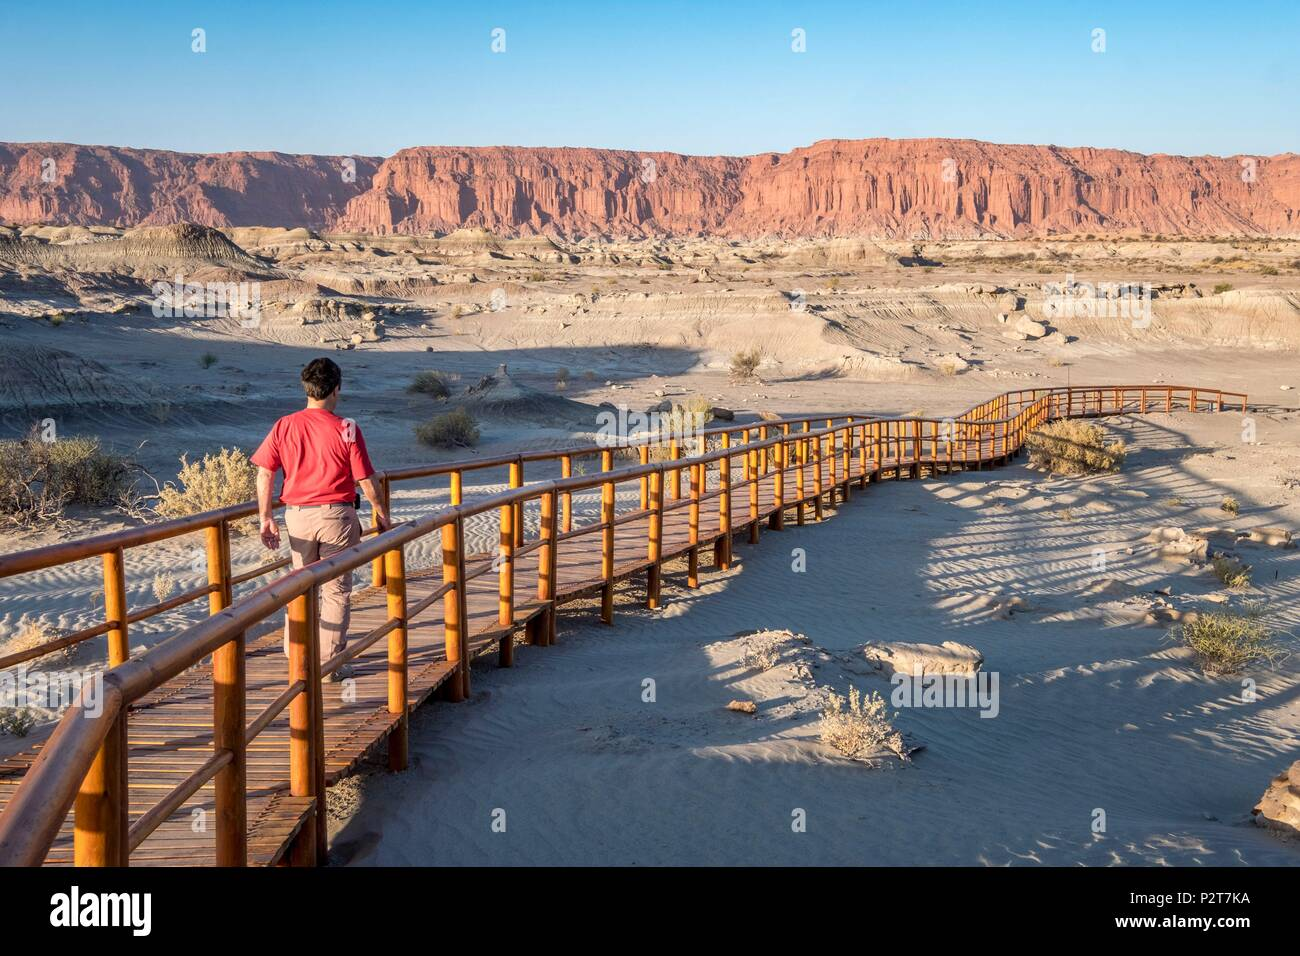 Argentina, San Juan province, Parque Ischigualasto listed as World Heritage by UNESCO, Dr William Sill museum - Stock Image